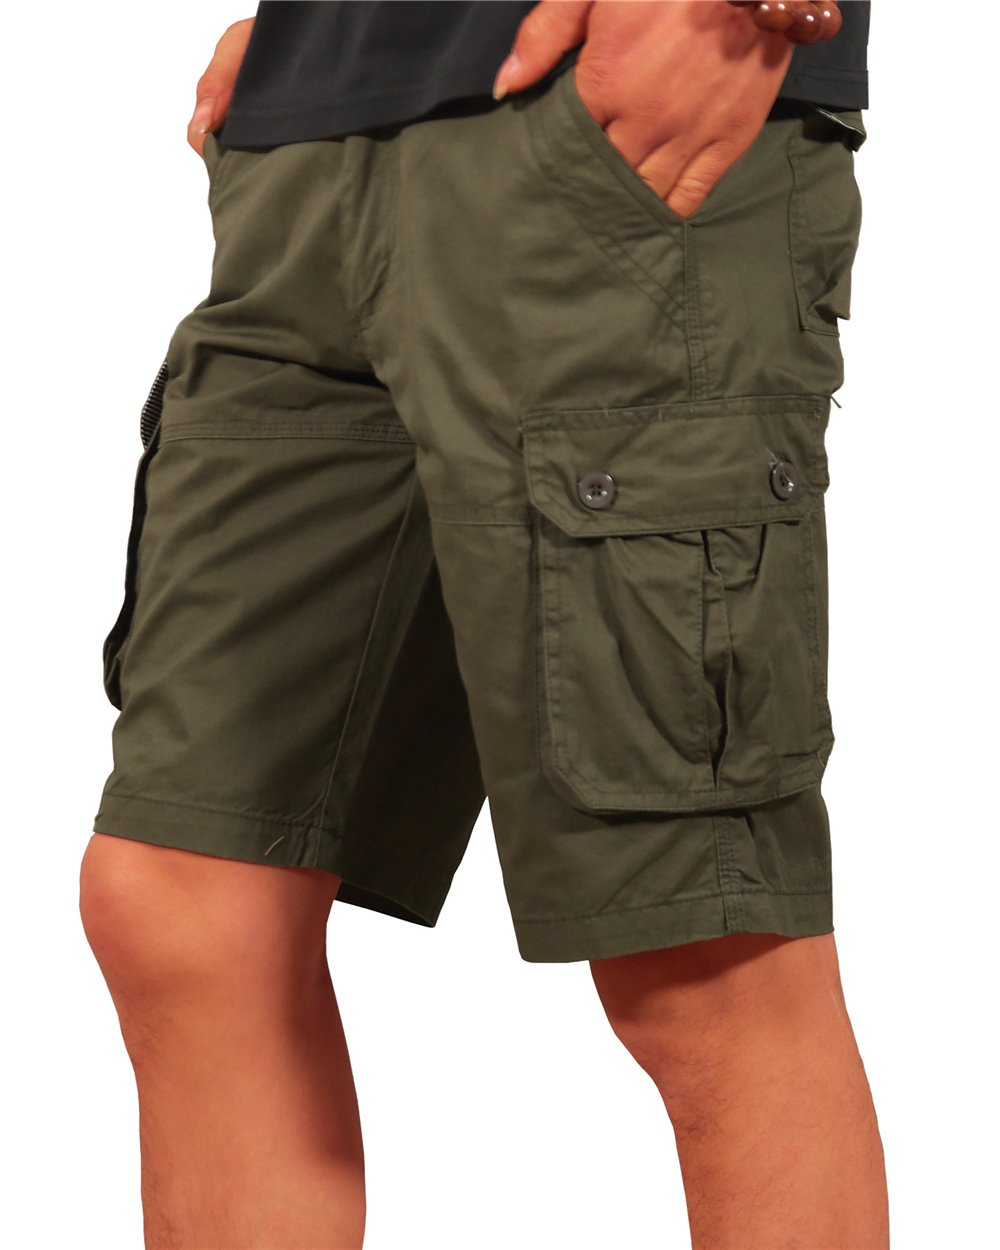 MAKEIIT Mens Baggy Cargo Shorts Uniform Cargo Shorts Ripstop Cargo Shorts with Multi-Pocket